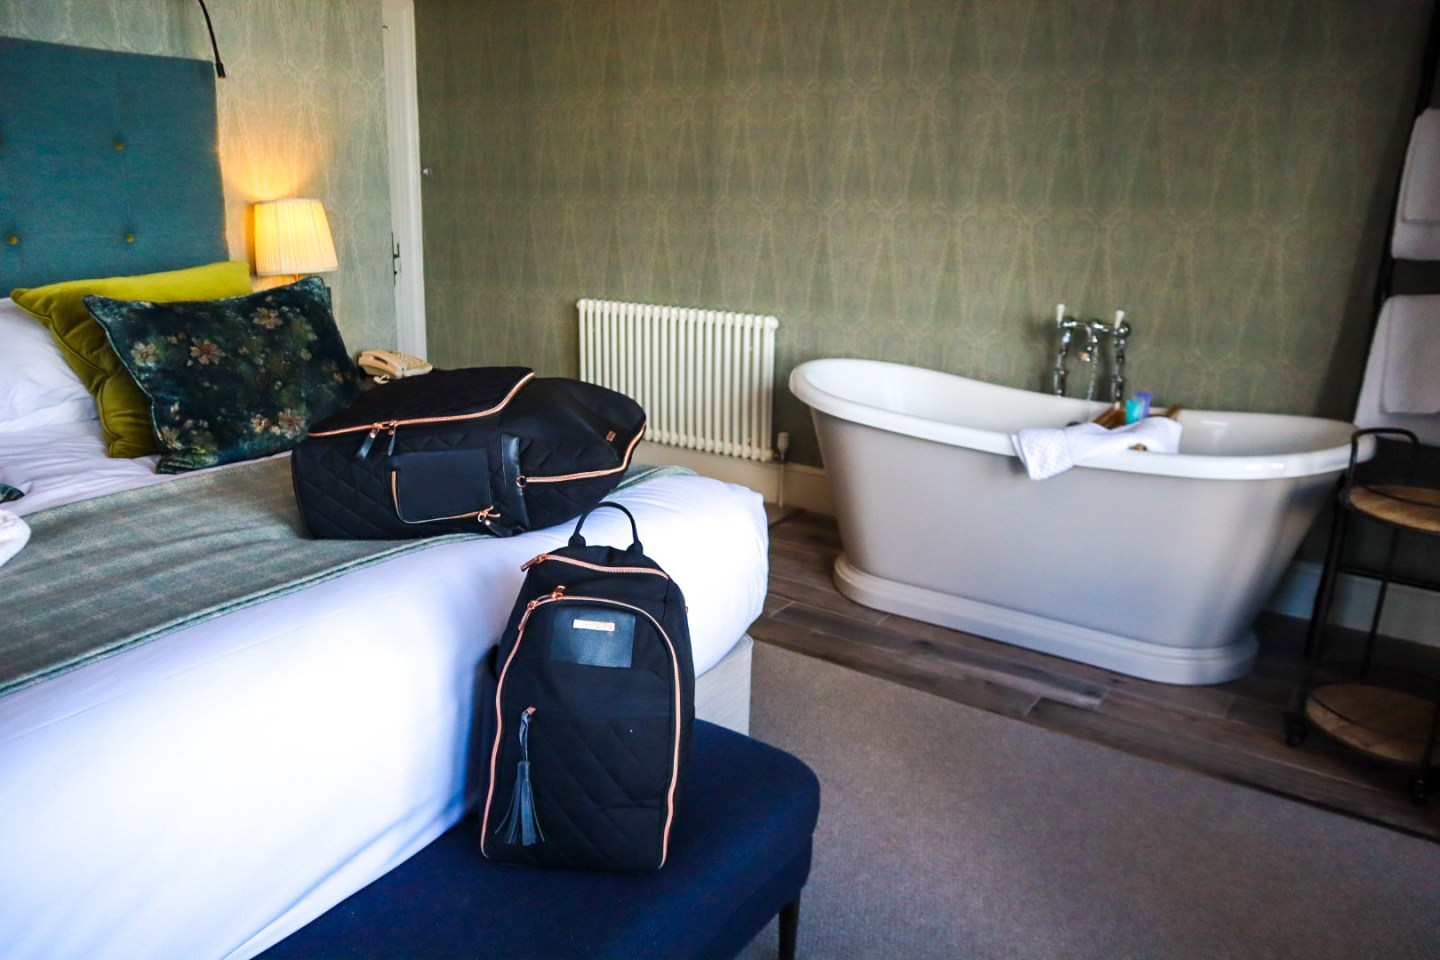 The Travel hack bags at Carbis Bay Hotel and Spa